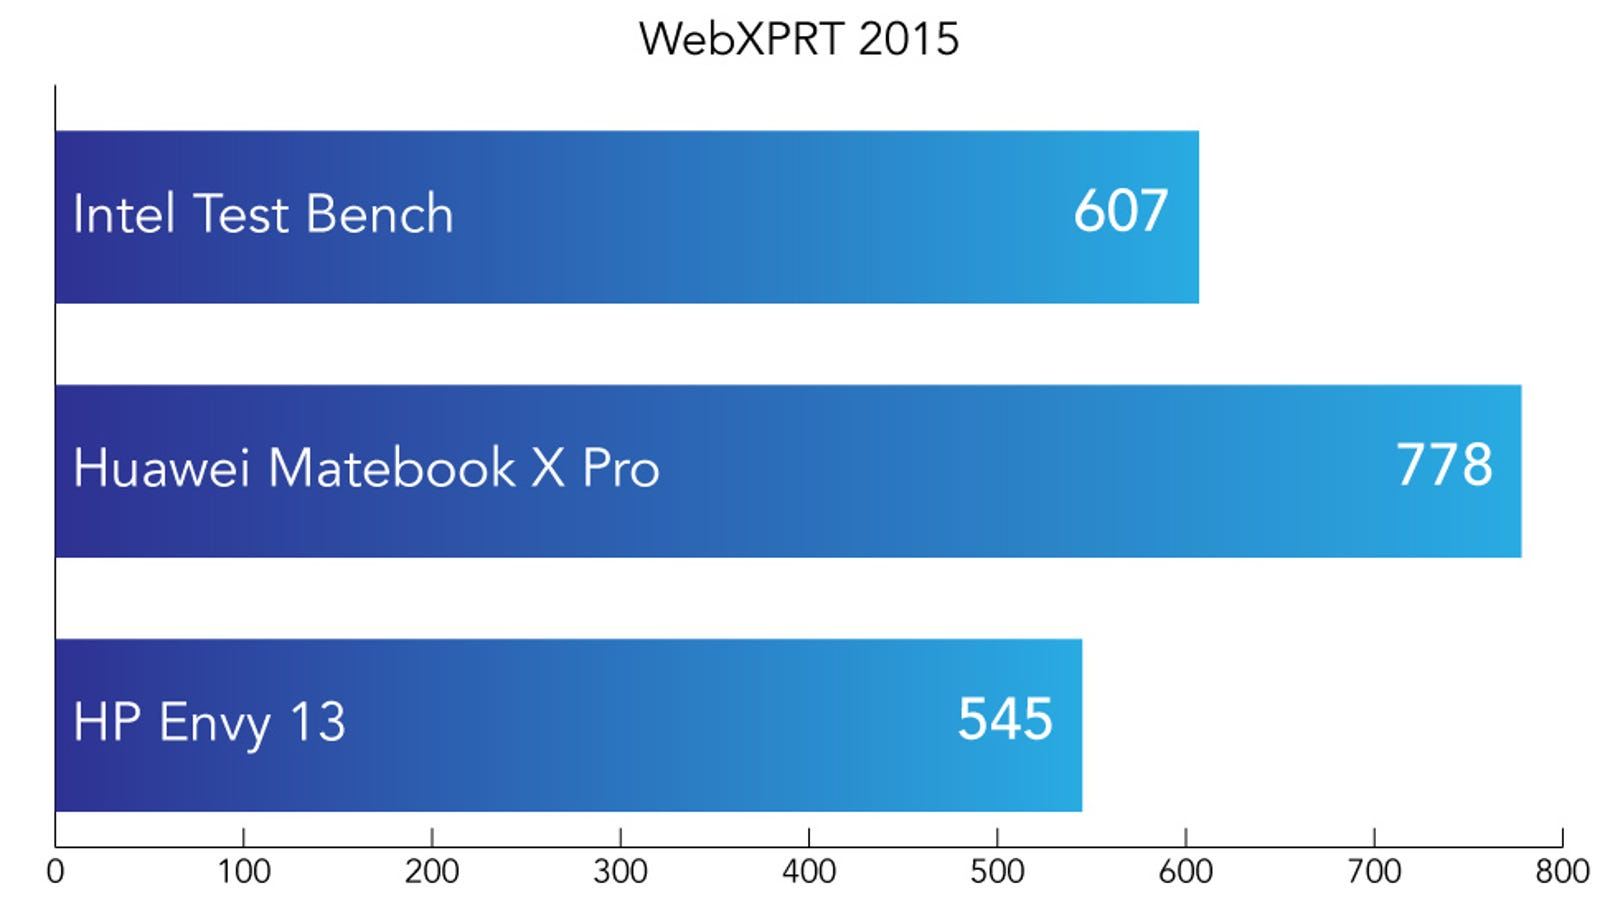 WebXPRT 2015 is a browser based benchmark designed to set tasks commonly performed in the browser. Performance can be affected by the internet. Higher is better.